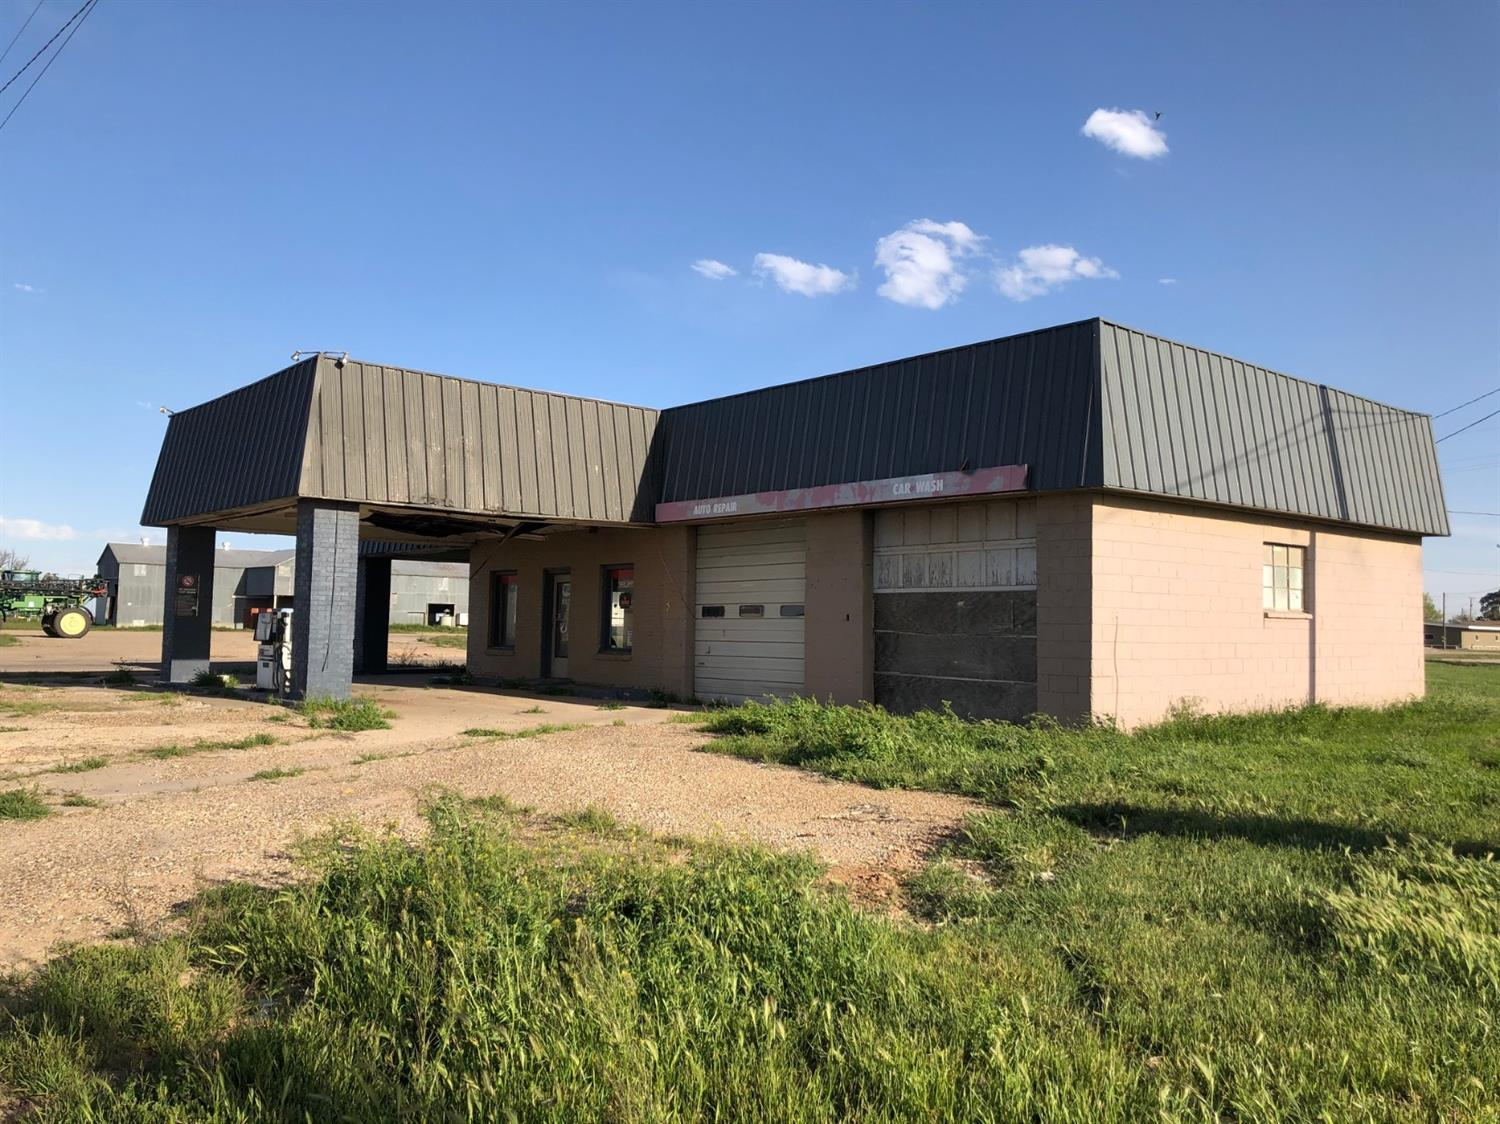 Commercial property available at the corner of US Hwy 82/62/State Hwy 114 and Harrison Ave in Lorenzo, TX. Property is on 1 acre along a well traveled highway. City utilities. Sold as-is.